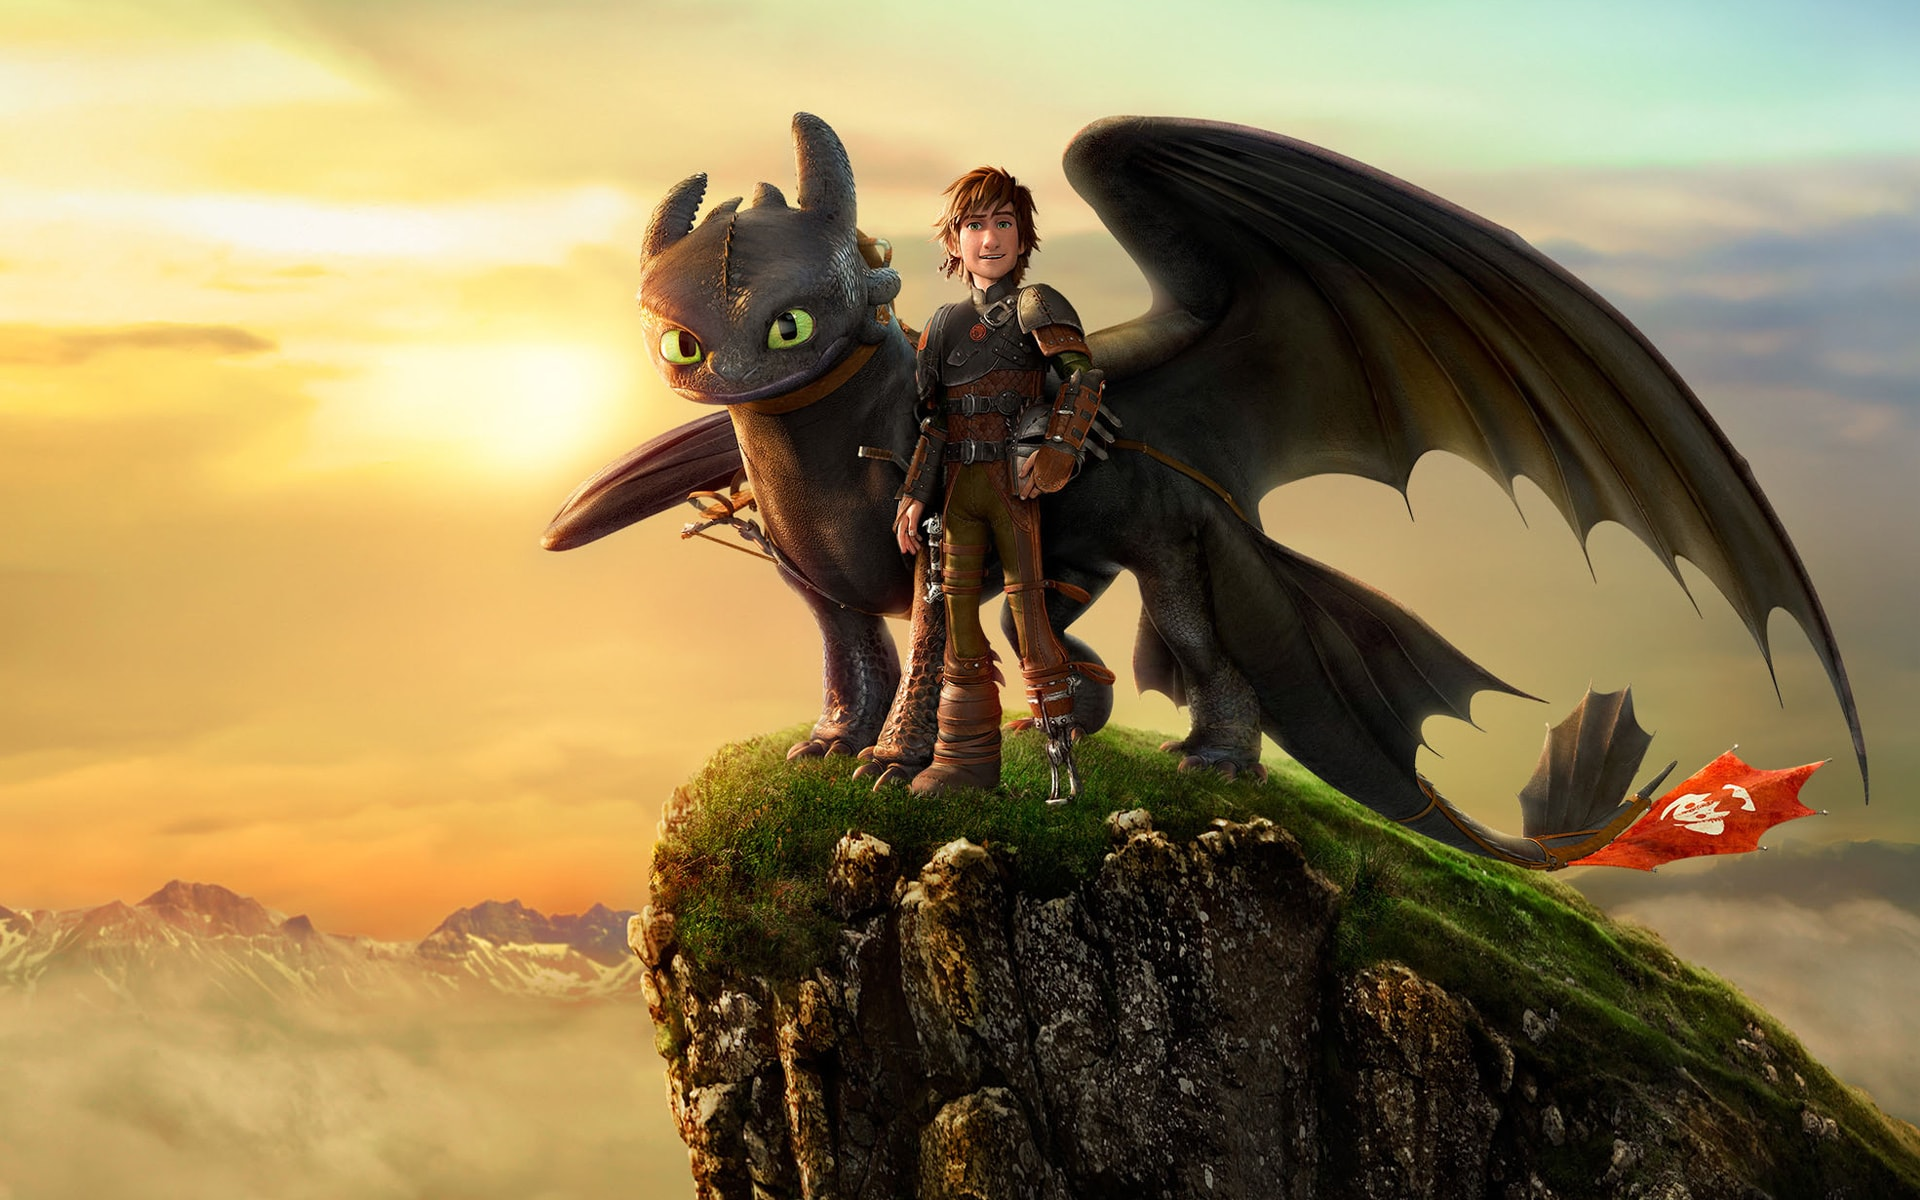 How to Train Your Dragon 2 Wallpapers hd